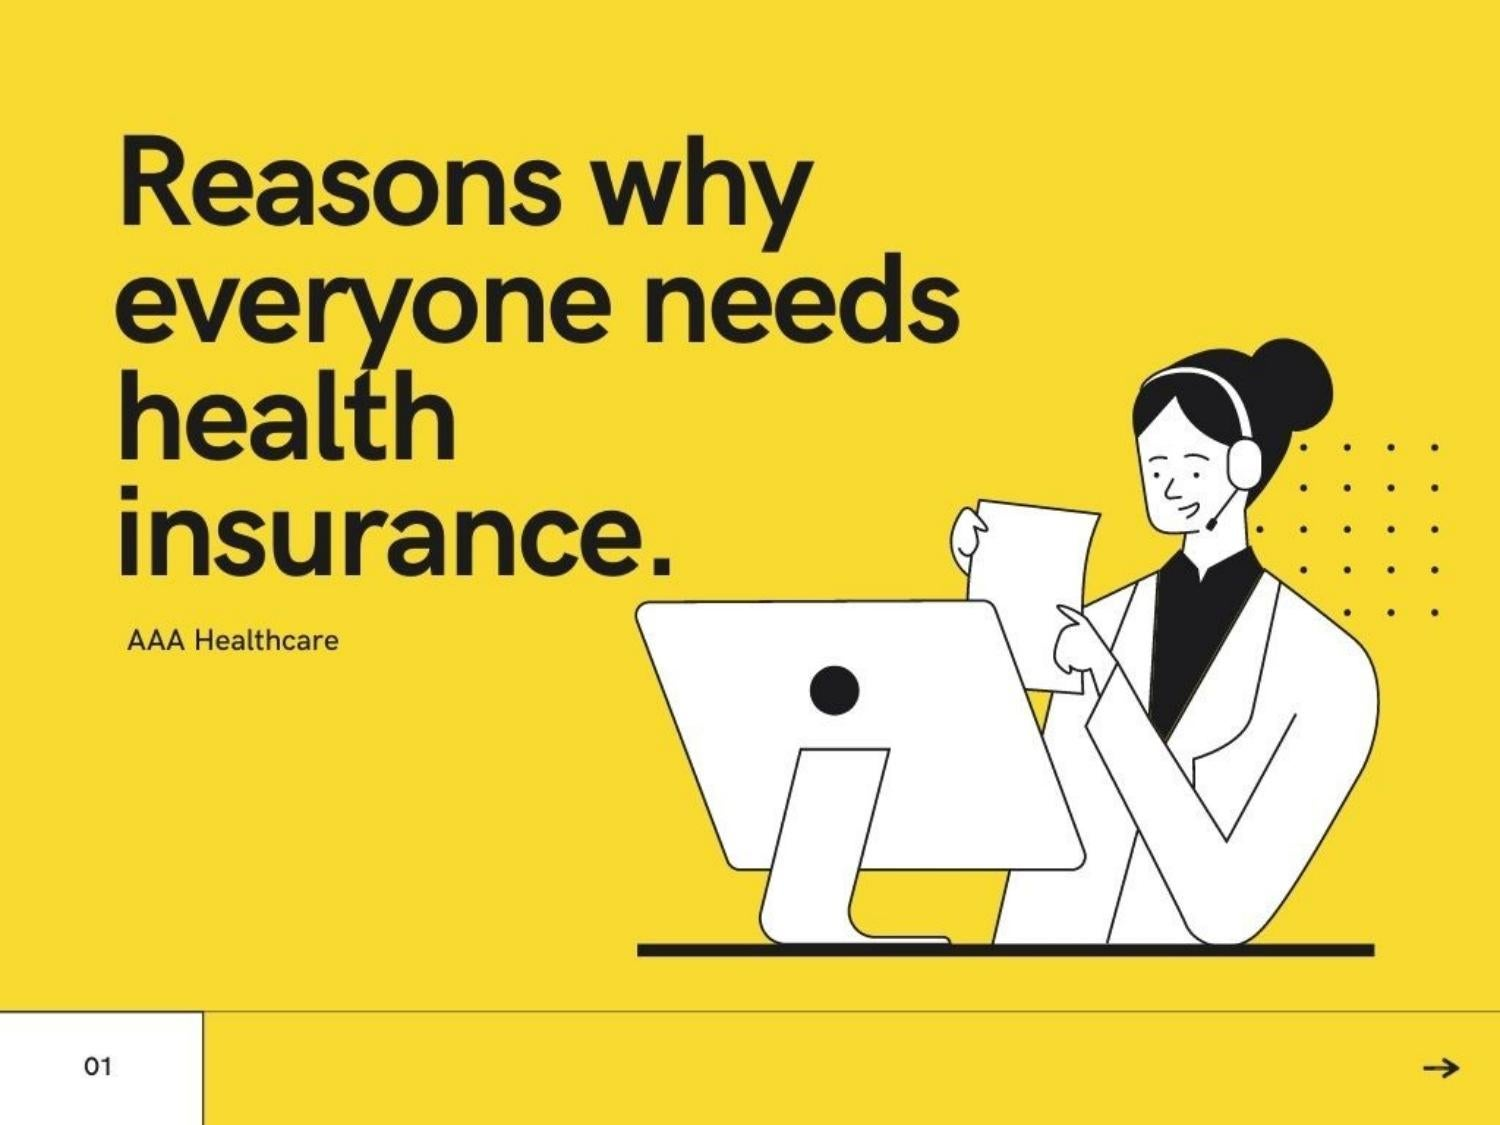 Reasons why everyone needs health insurance